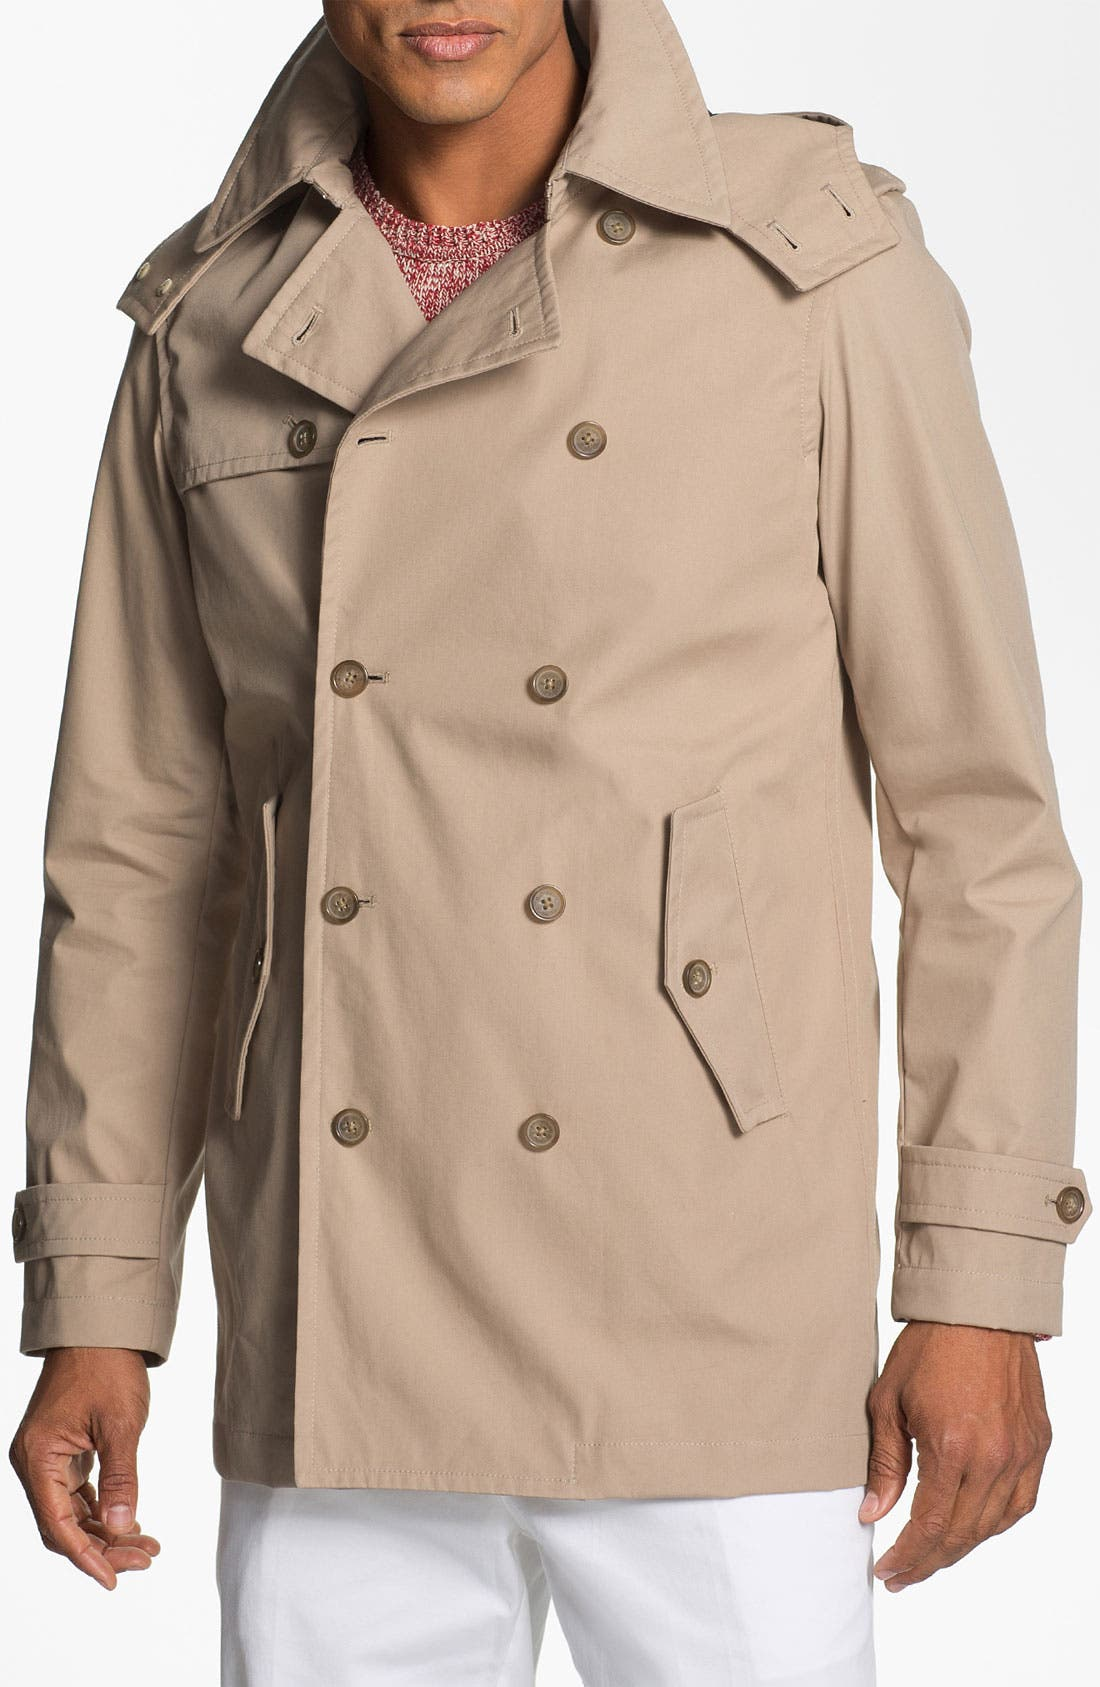 Alternate Image 1 Selected - Michael Kors Hooded Trench Coat